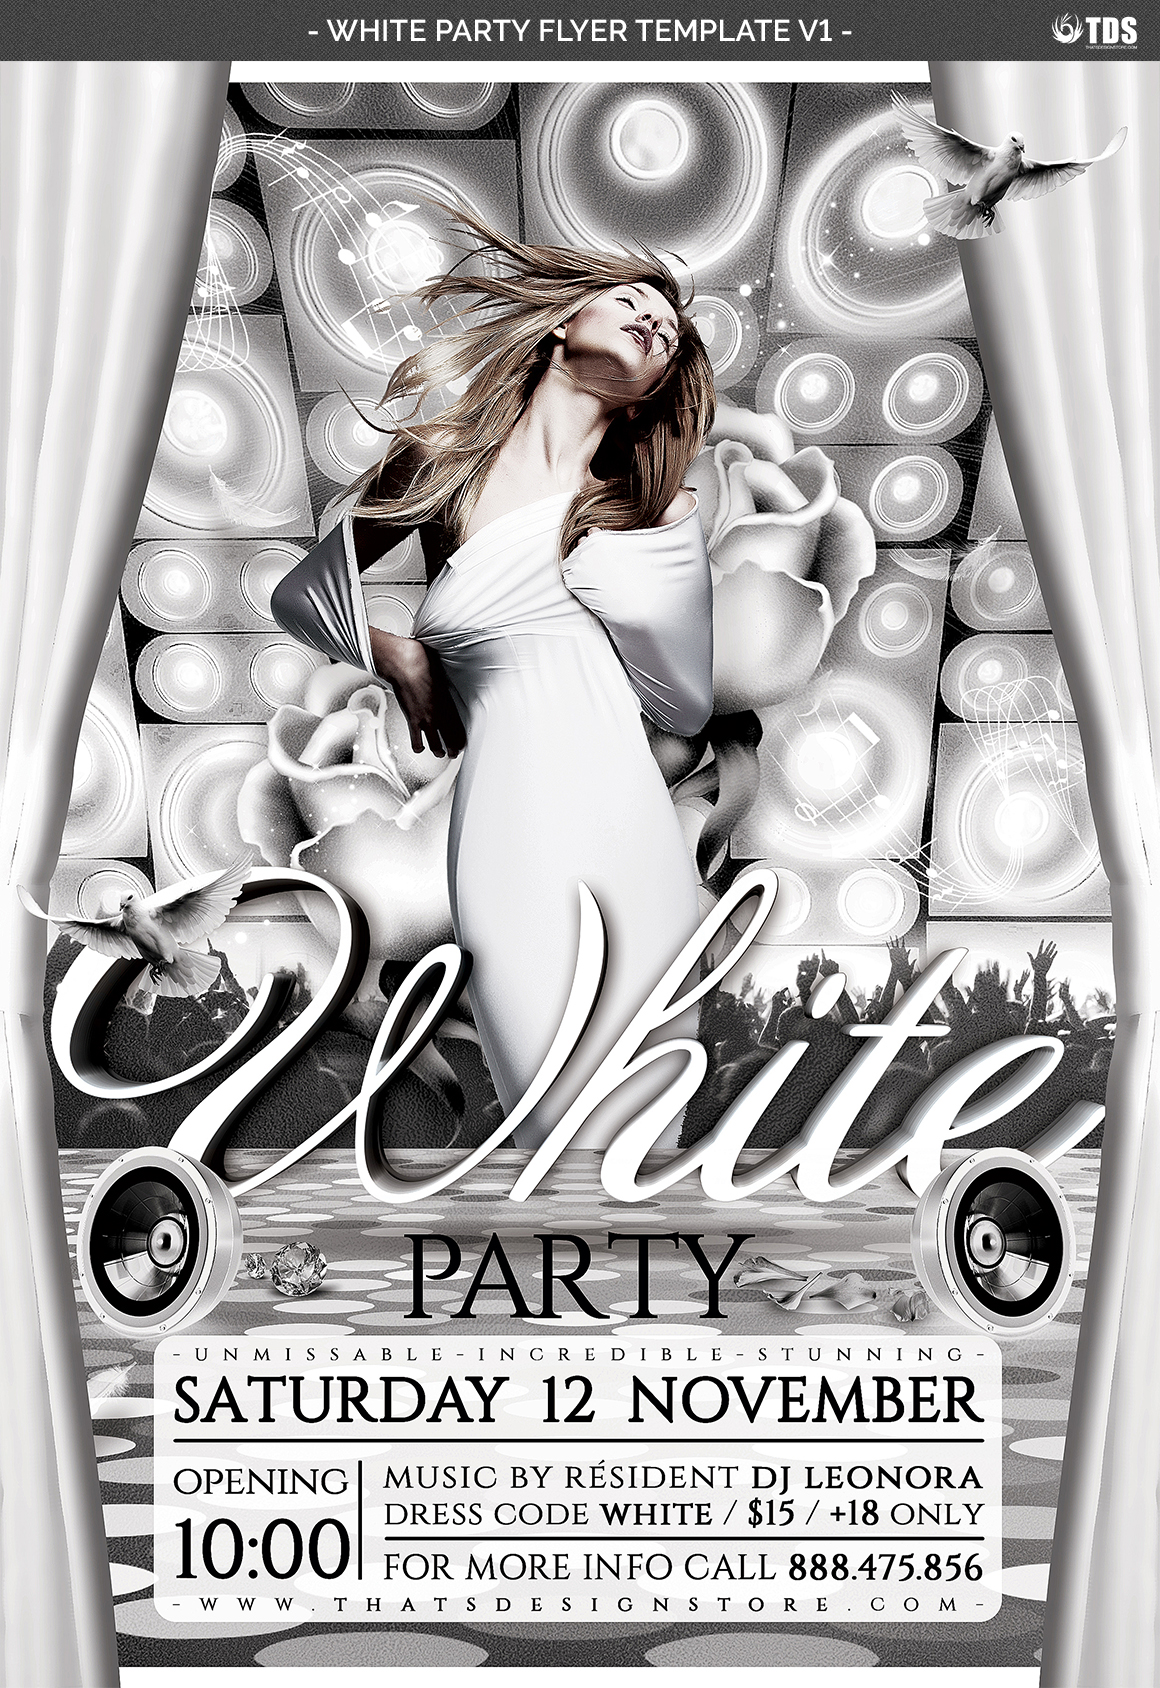 White Party Flyer Template V1 example image 4